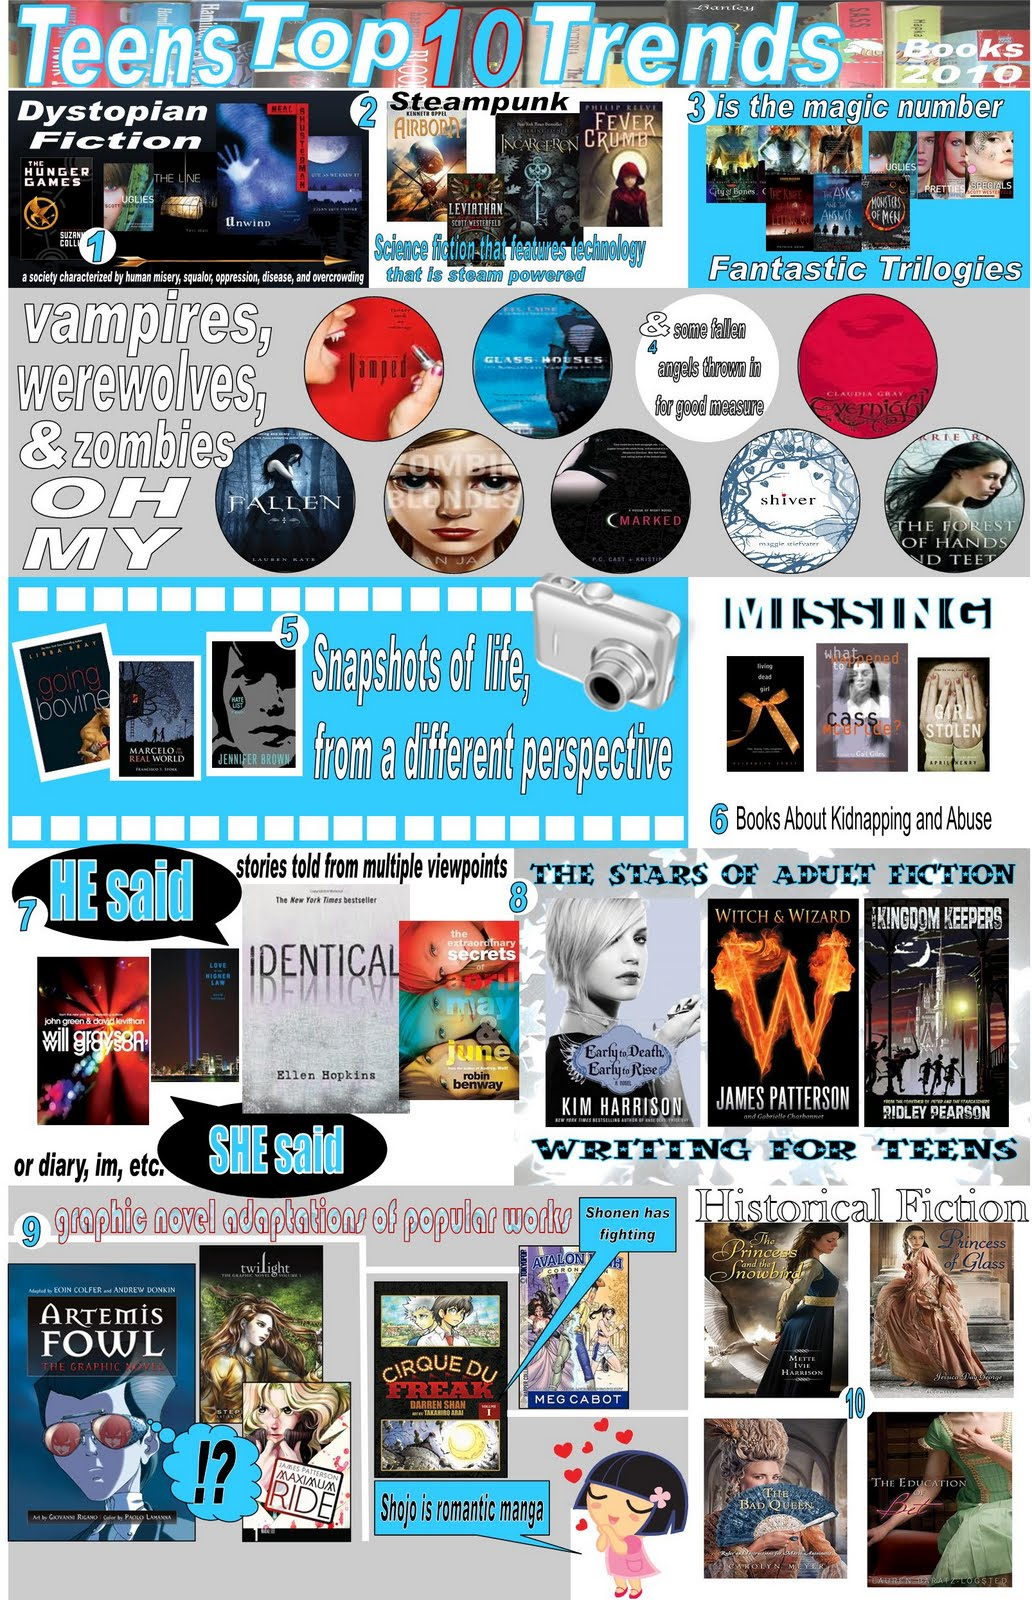 Teens%2BTop%2B10%2BTrends%2B2010%2BVers%2B2 Last week was Teen Read Week and I want to say thanks for all the teens who ...